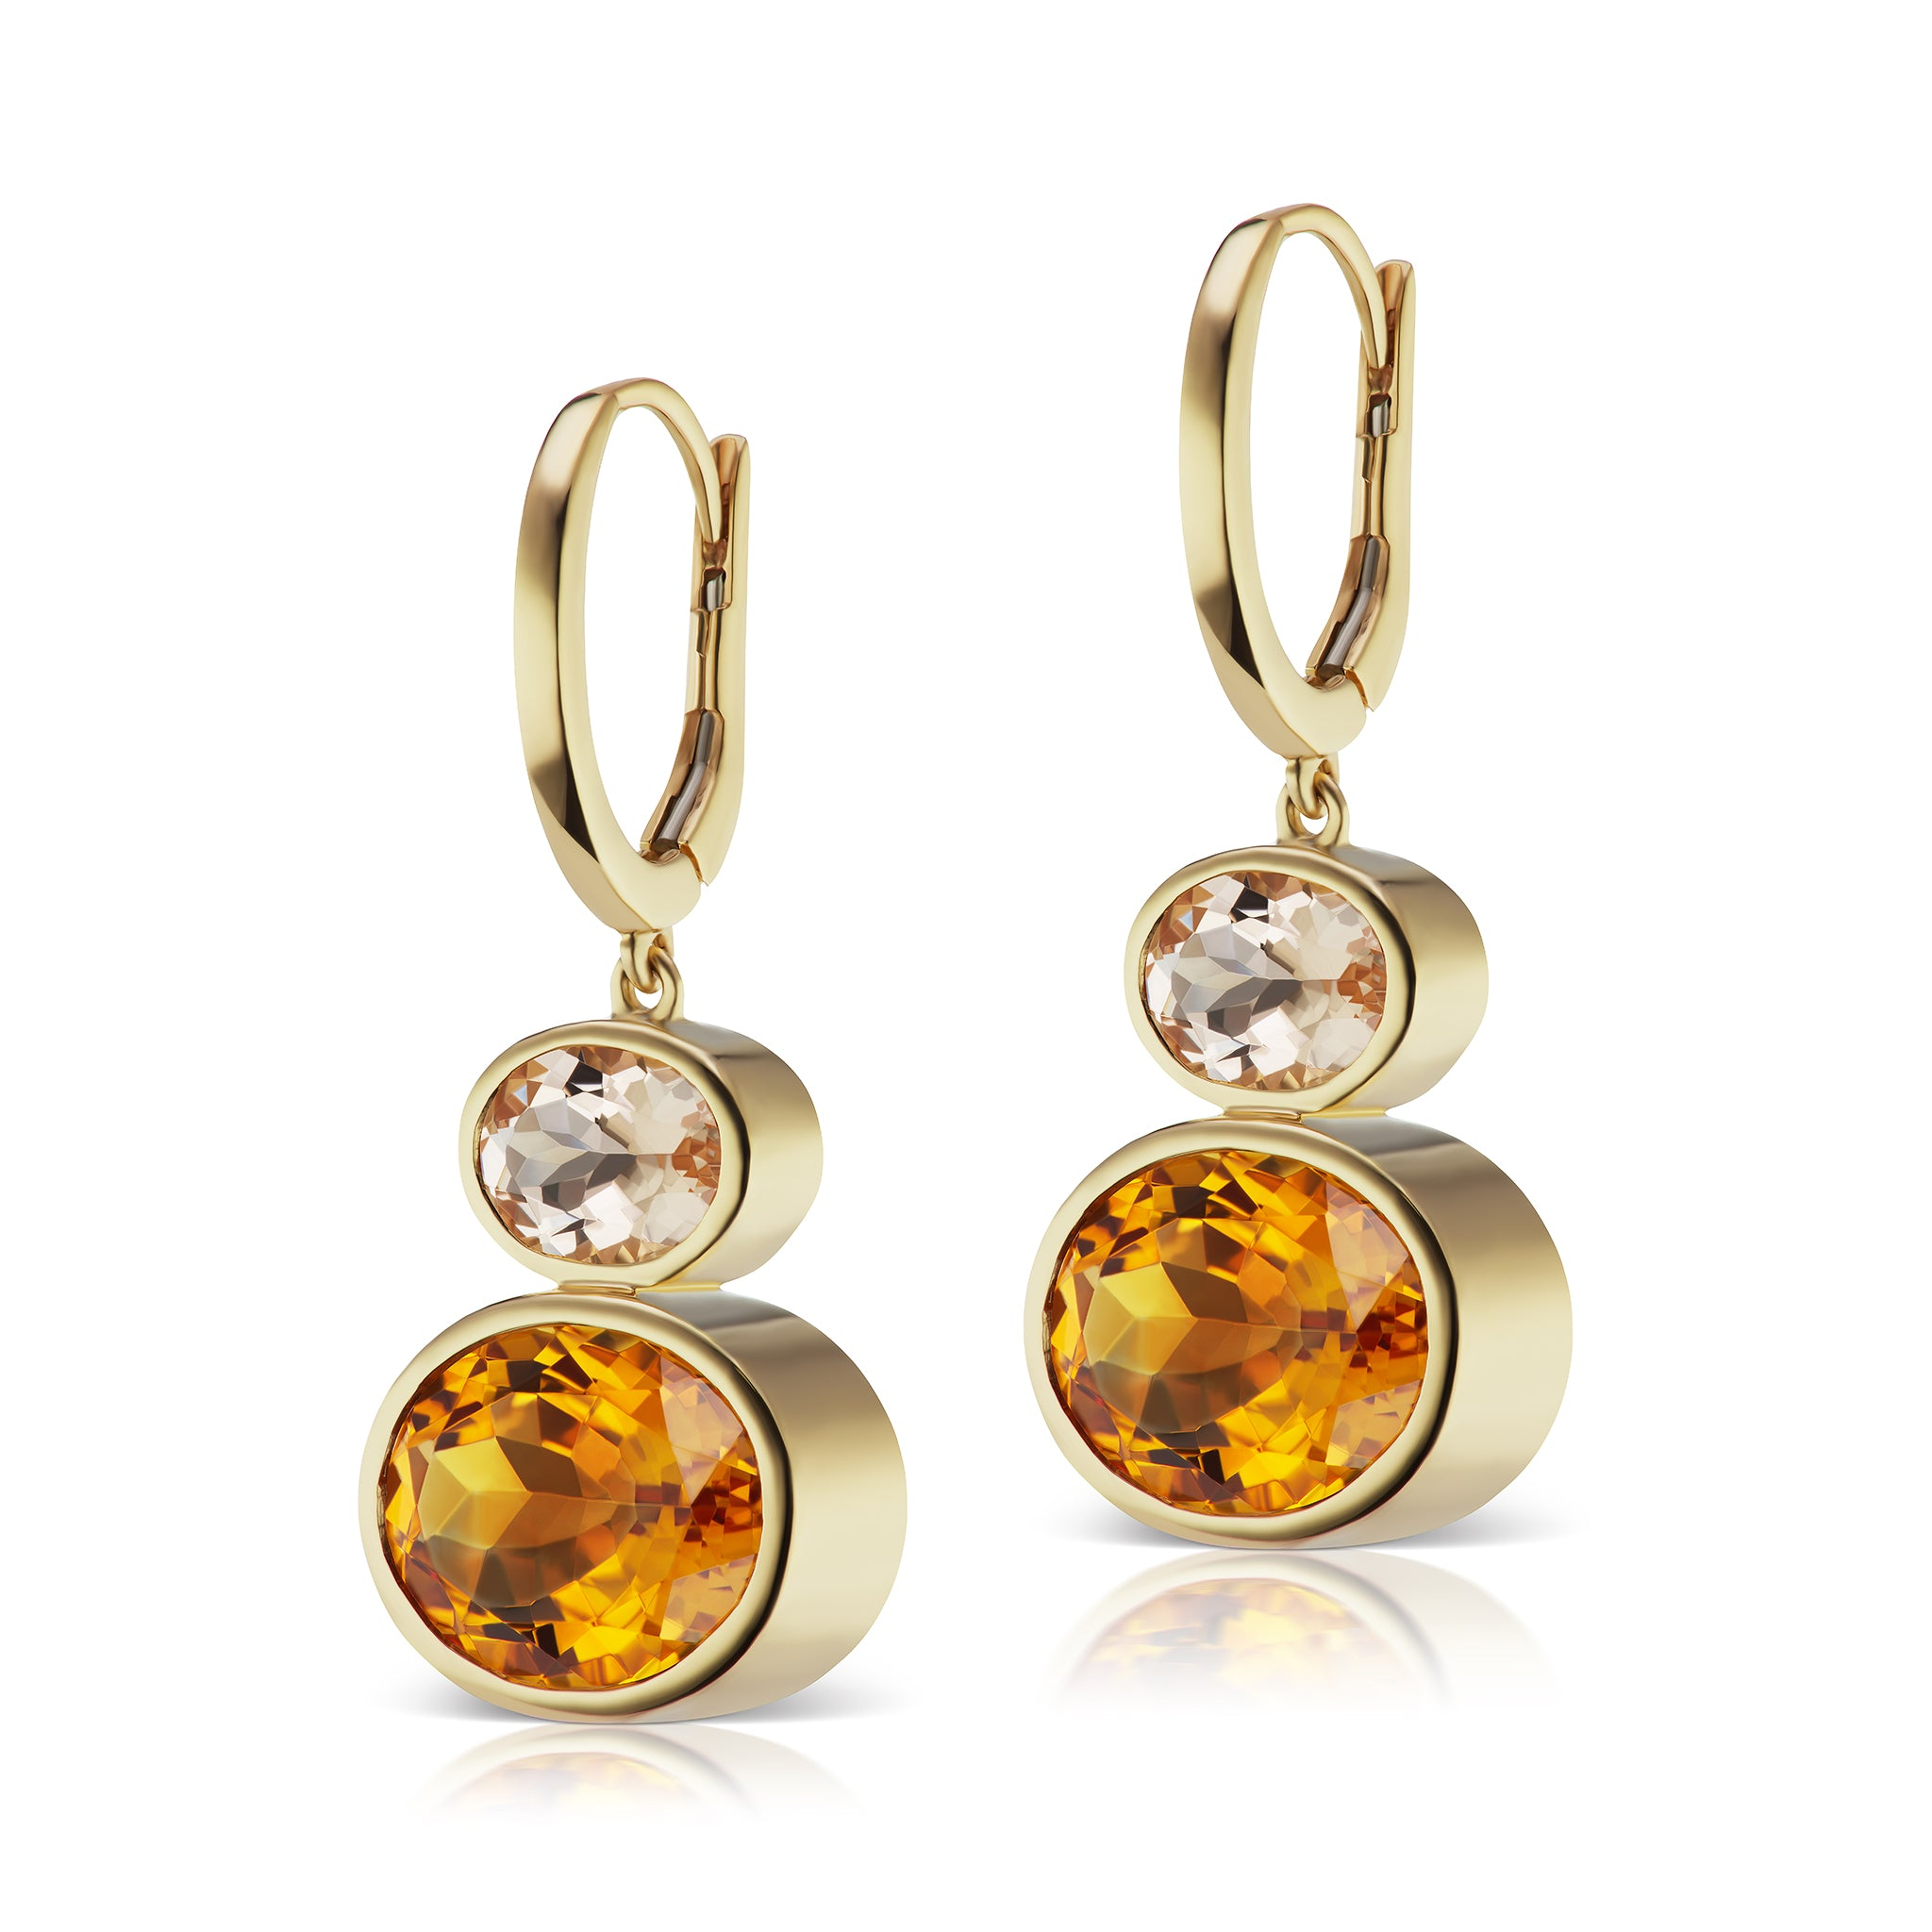 The Citrine Shell Bell Earrings